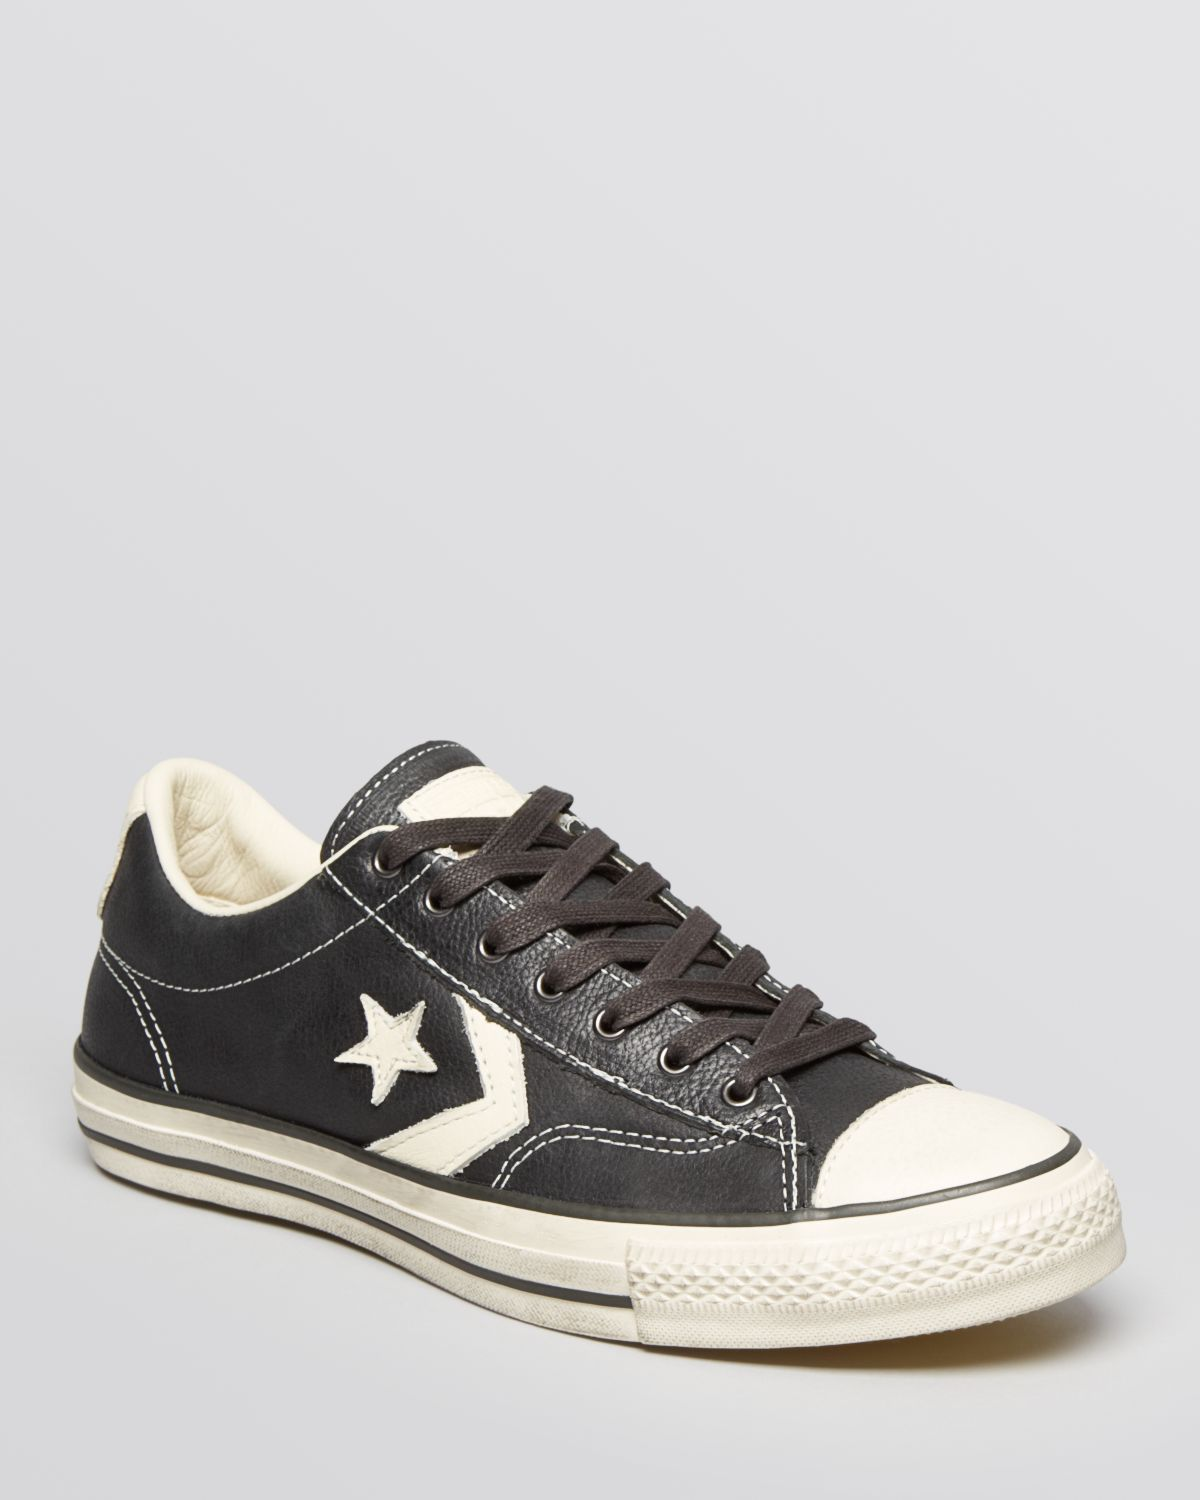 Converse x John Varvatos Star Player Mid Black G89q9604